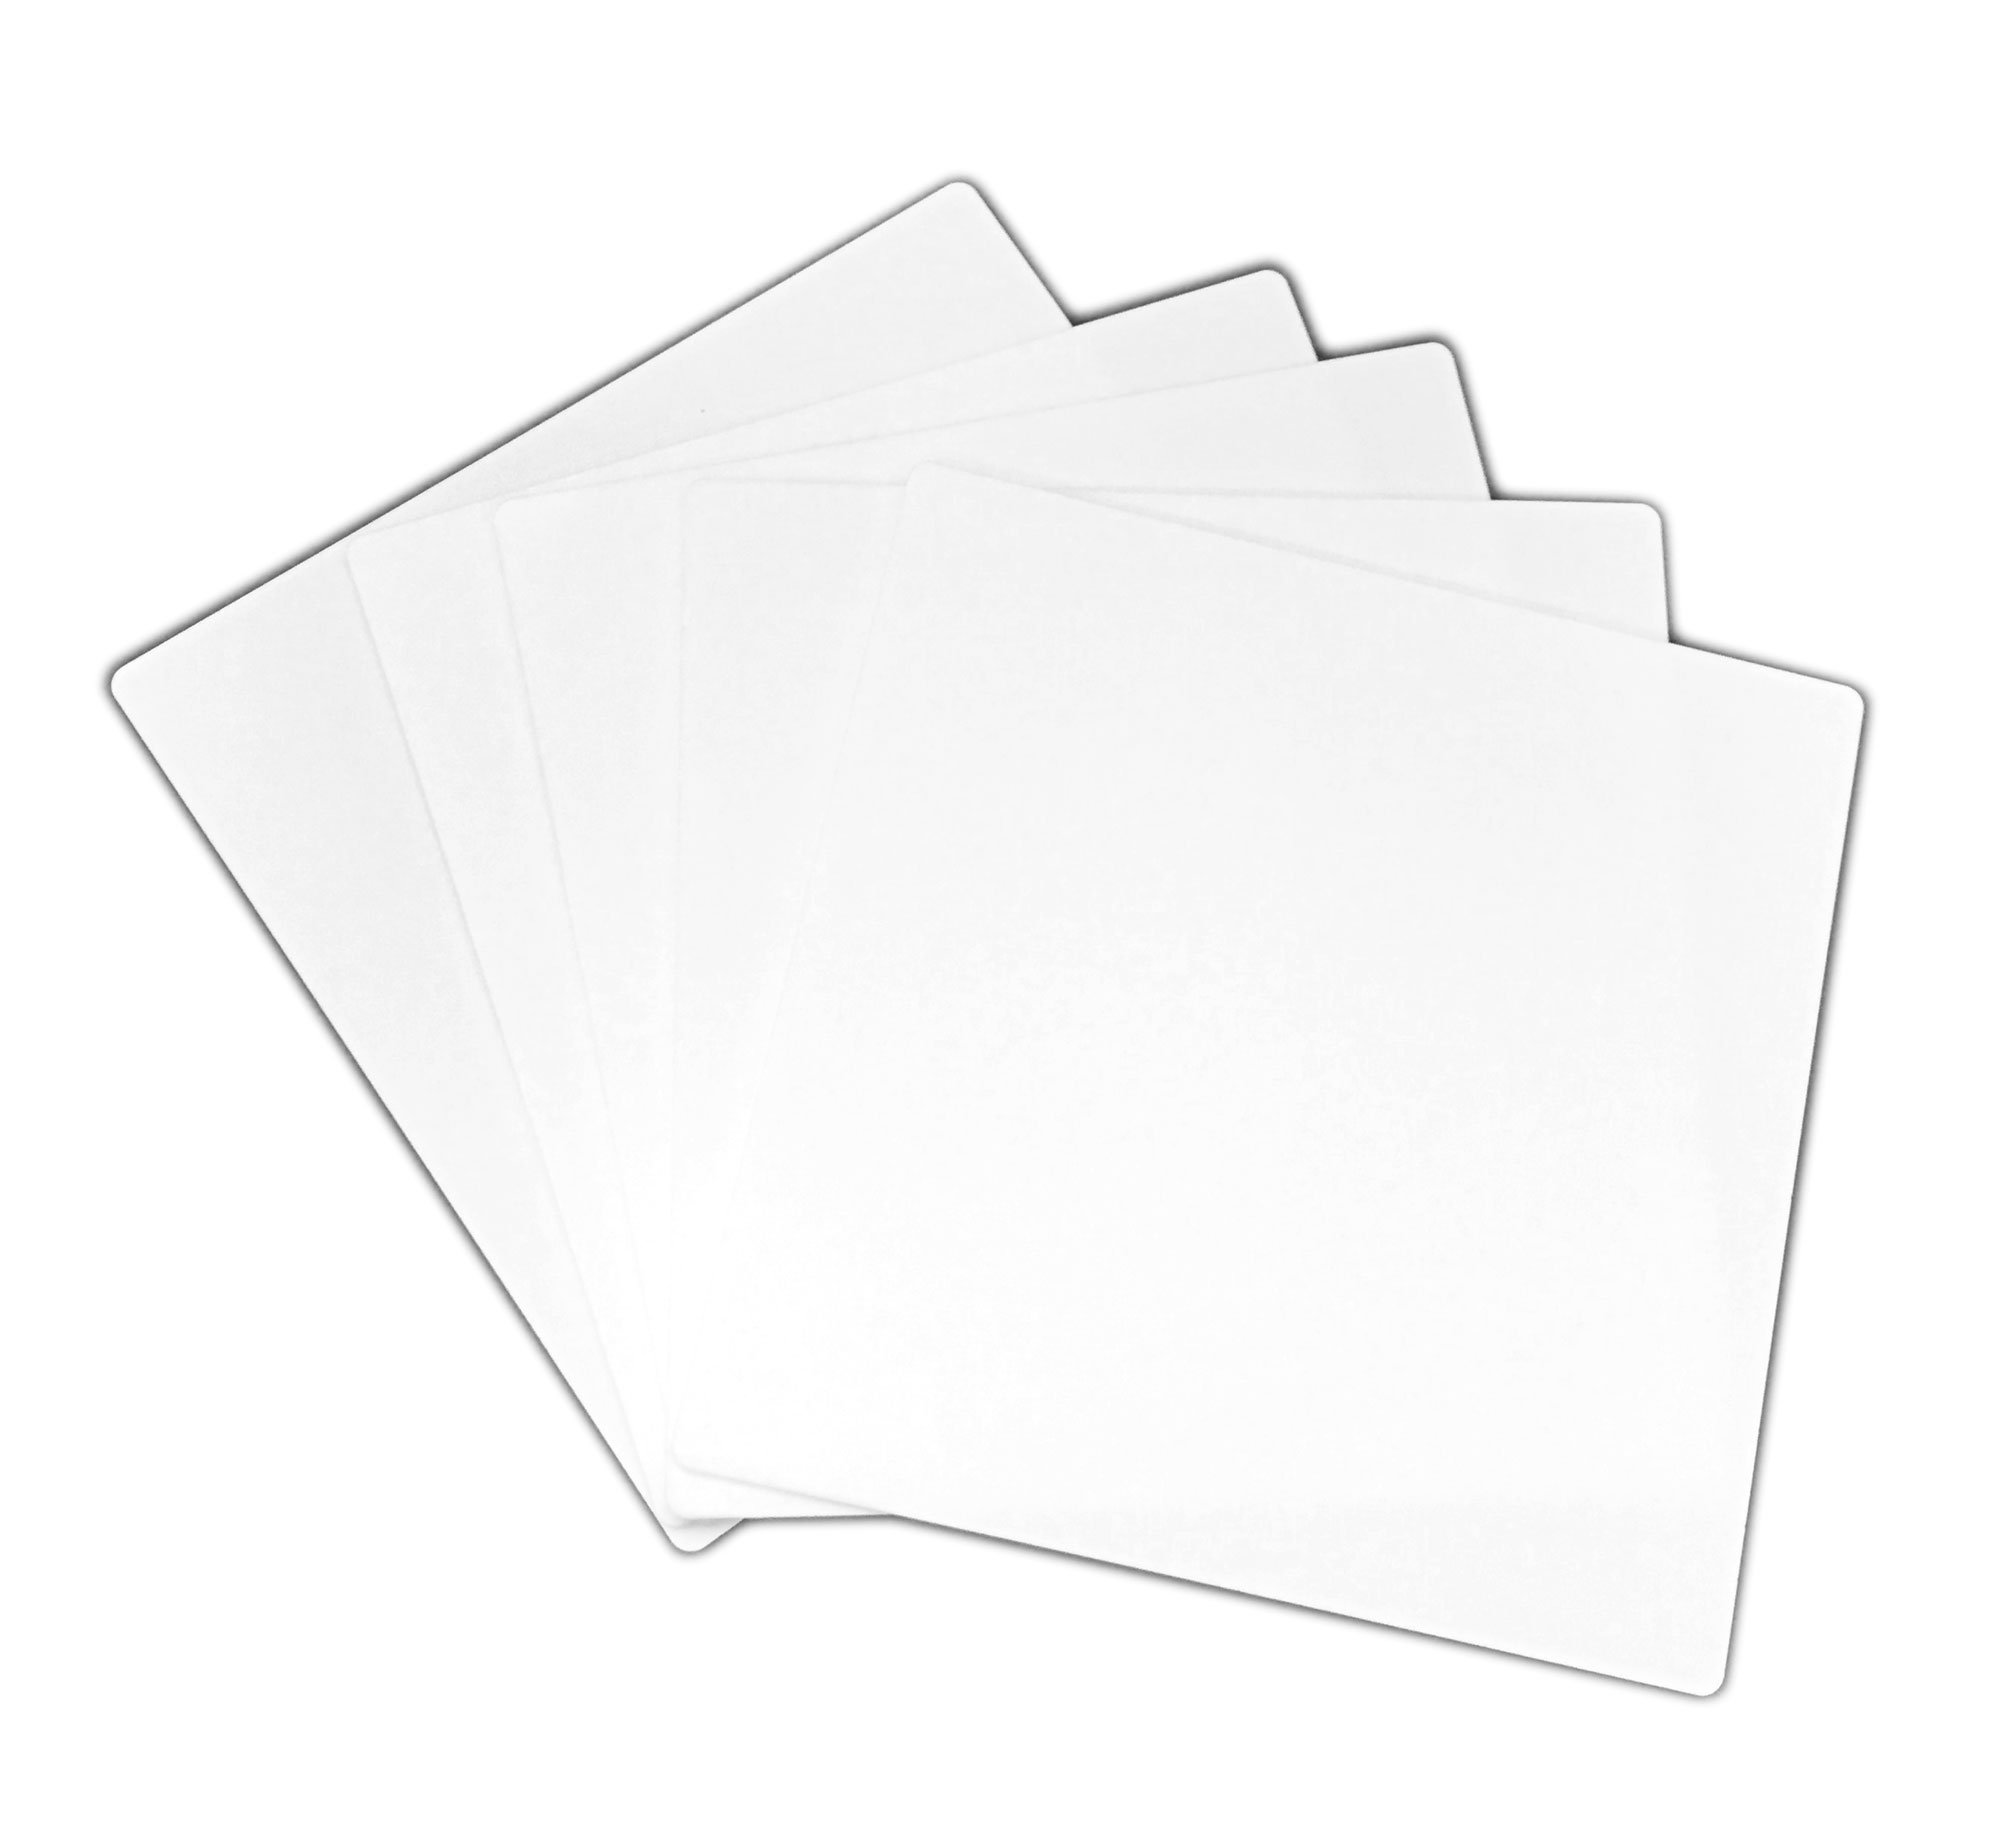 50 x Ceramic 96% Alumina Substrate Sheets 114x114x0.5mm 4.5x4.5x0.020 in by CP3INC